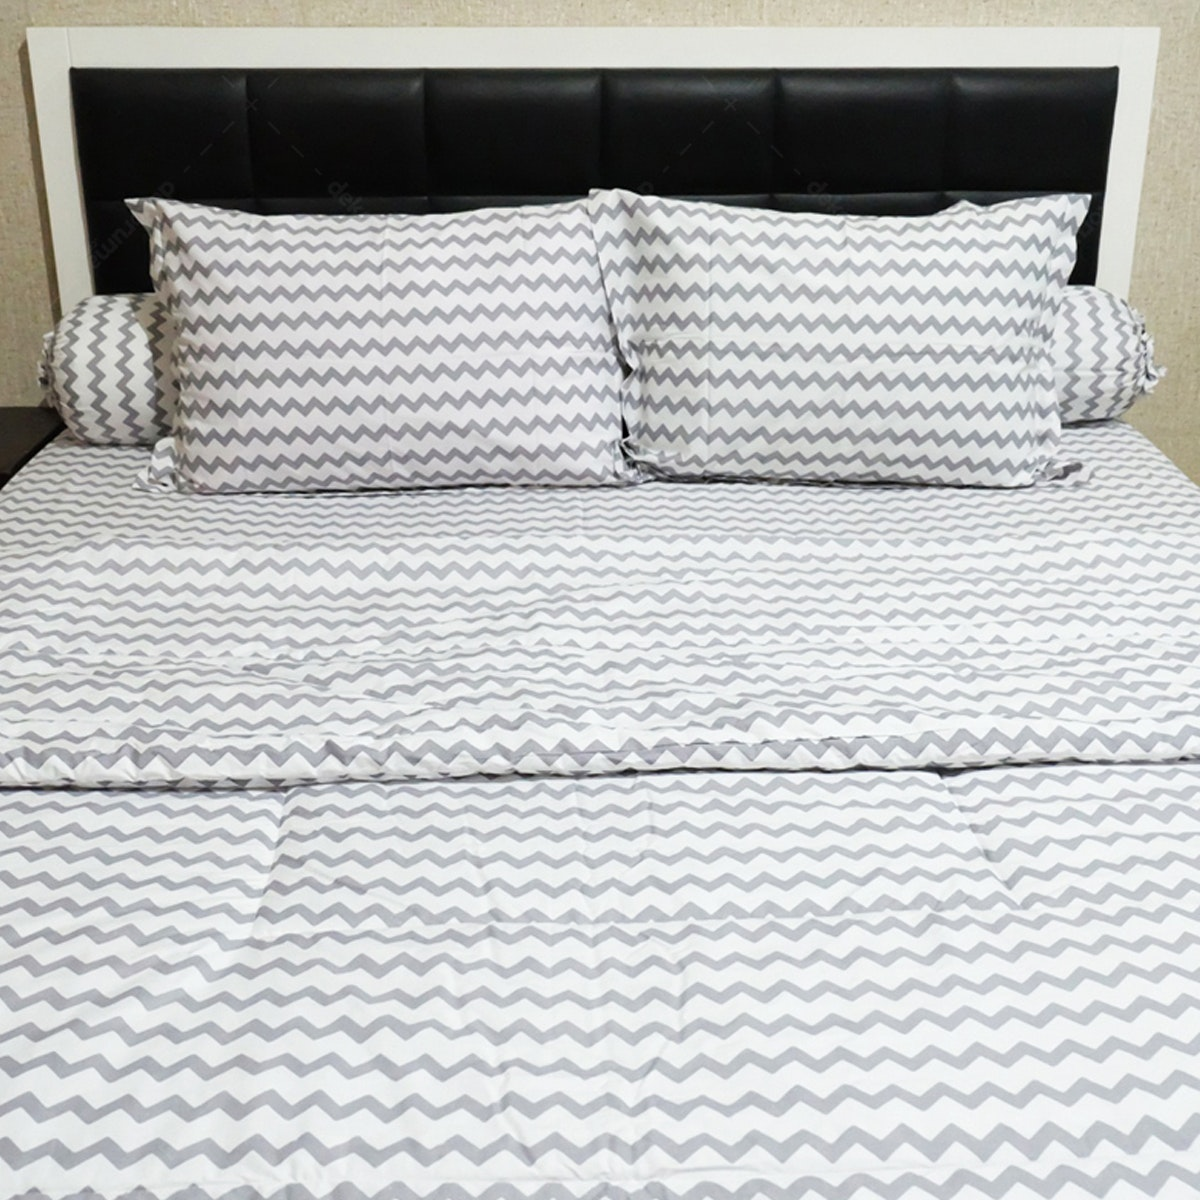 Sleep Buddy Set Sprei dan Bed Cover Baby Chevron Grey CVC 160x200x30